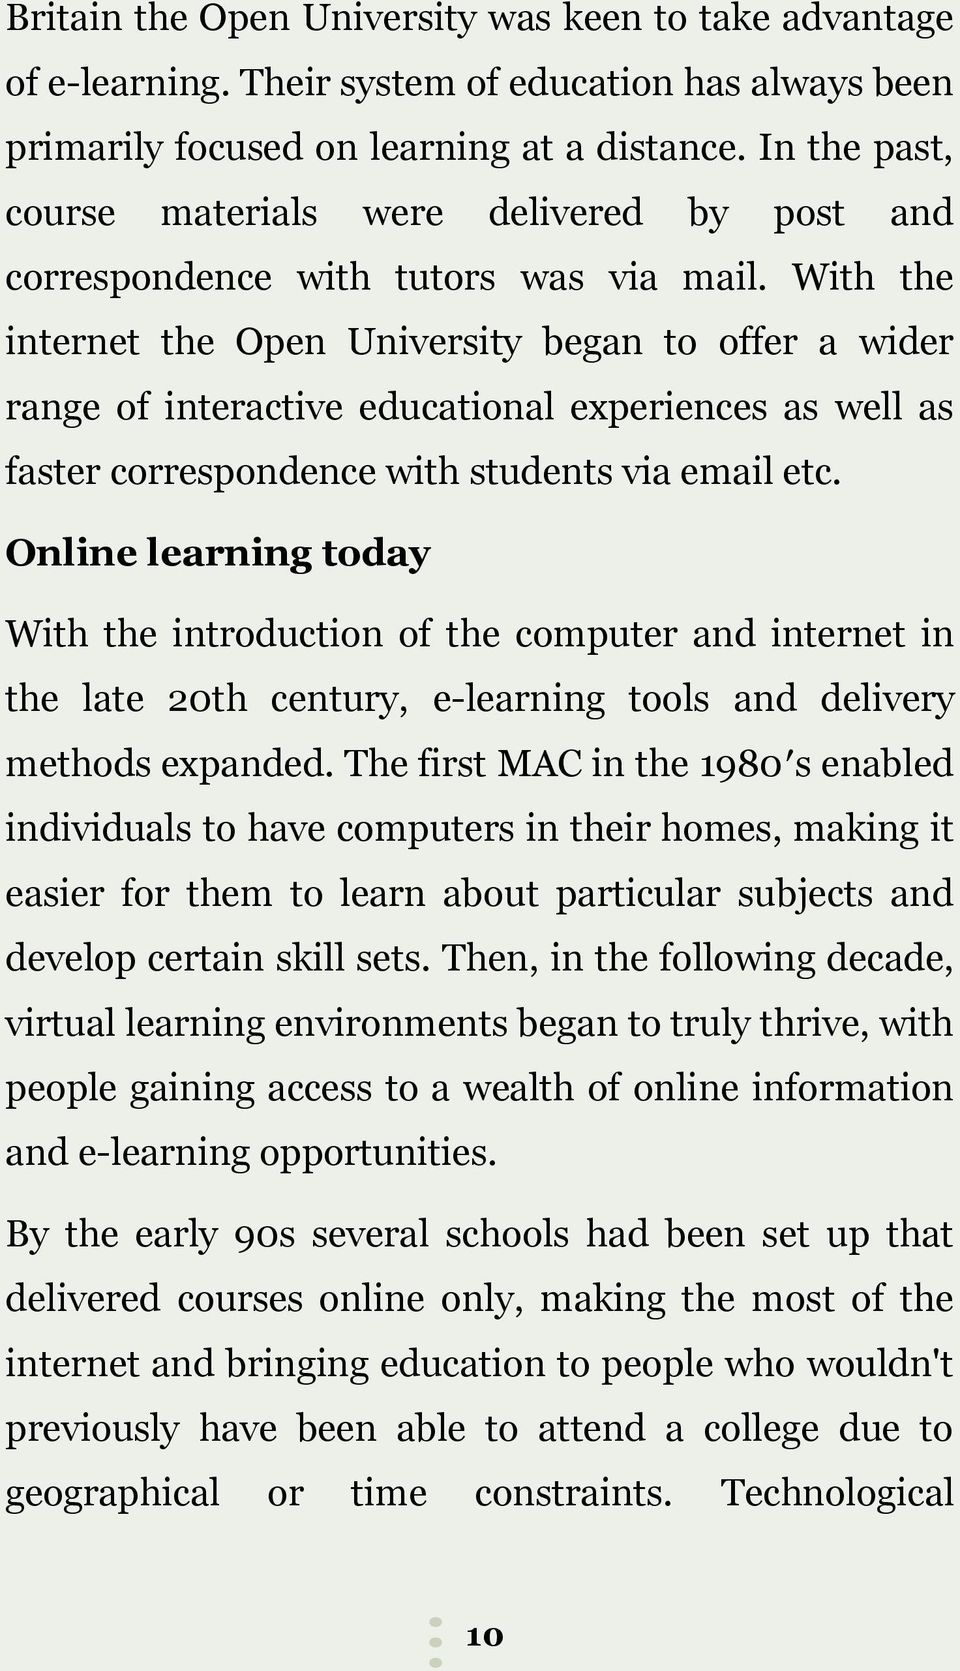 With the internet the Open University began to offer a wider range of interactive educational experiences as well as faster correspondence with students via email etc.